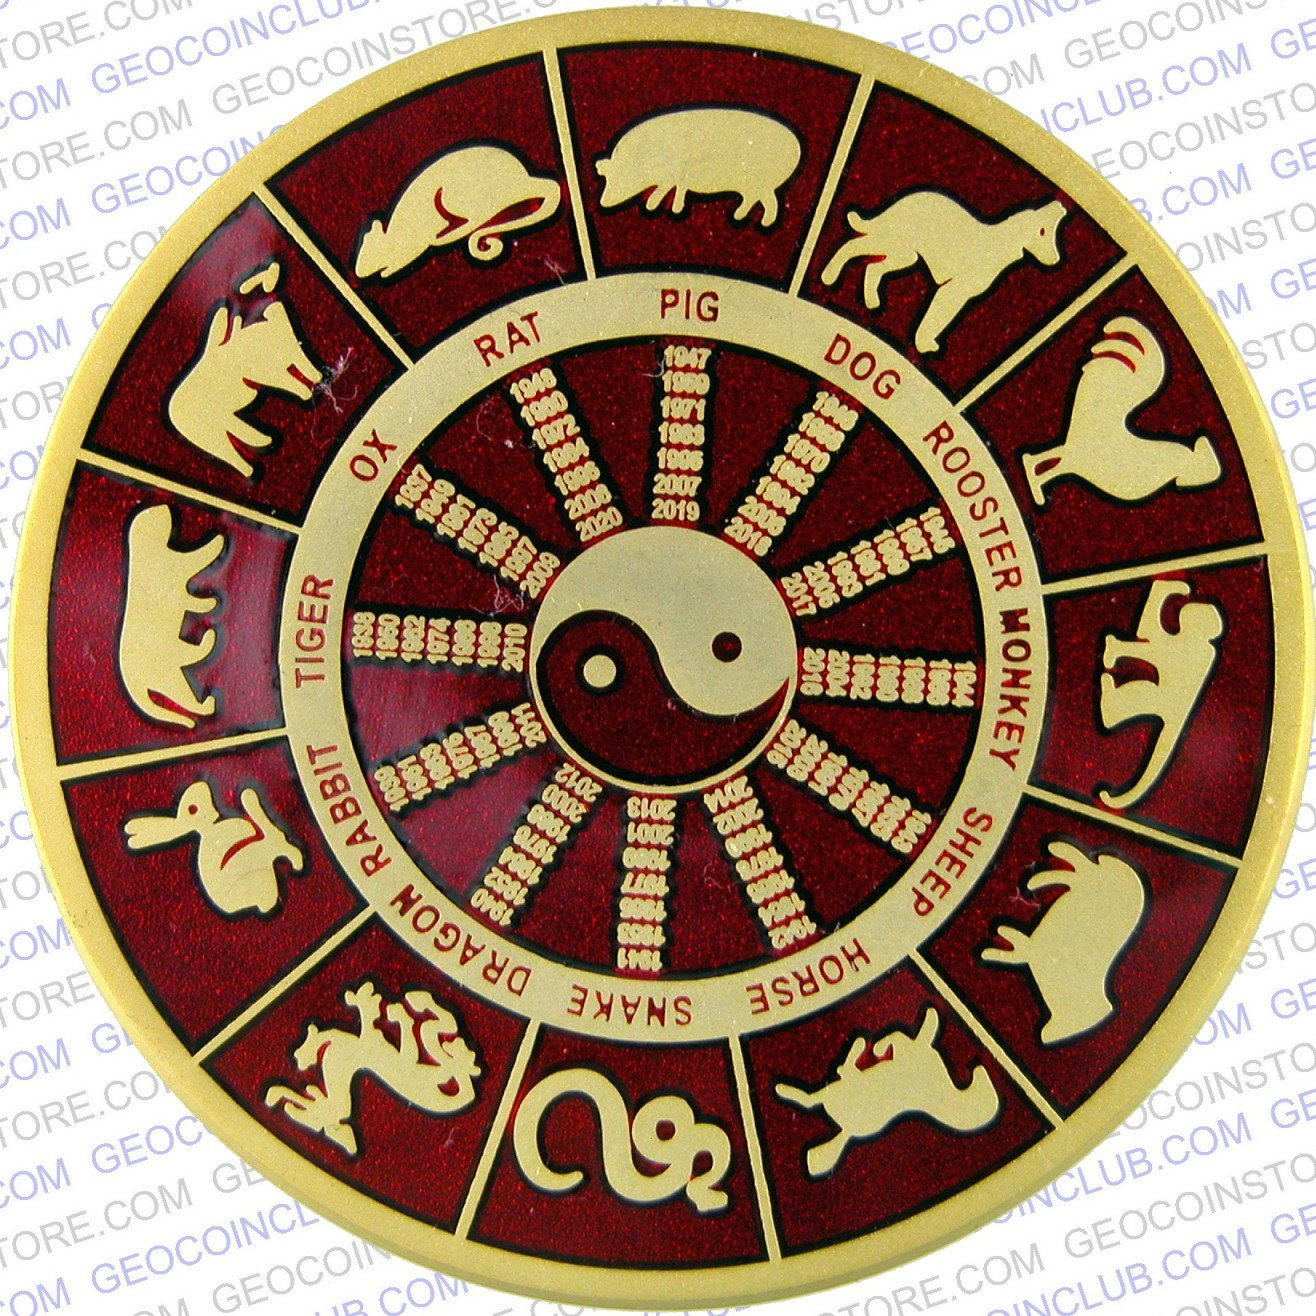 chinese zodiac tiger red serving geocaching with geocoins pathtags. Black Bedroom Furniture Sets. Home Design Ideas